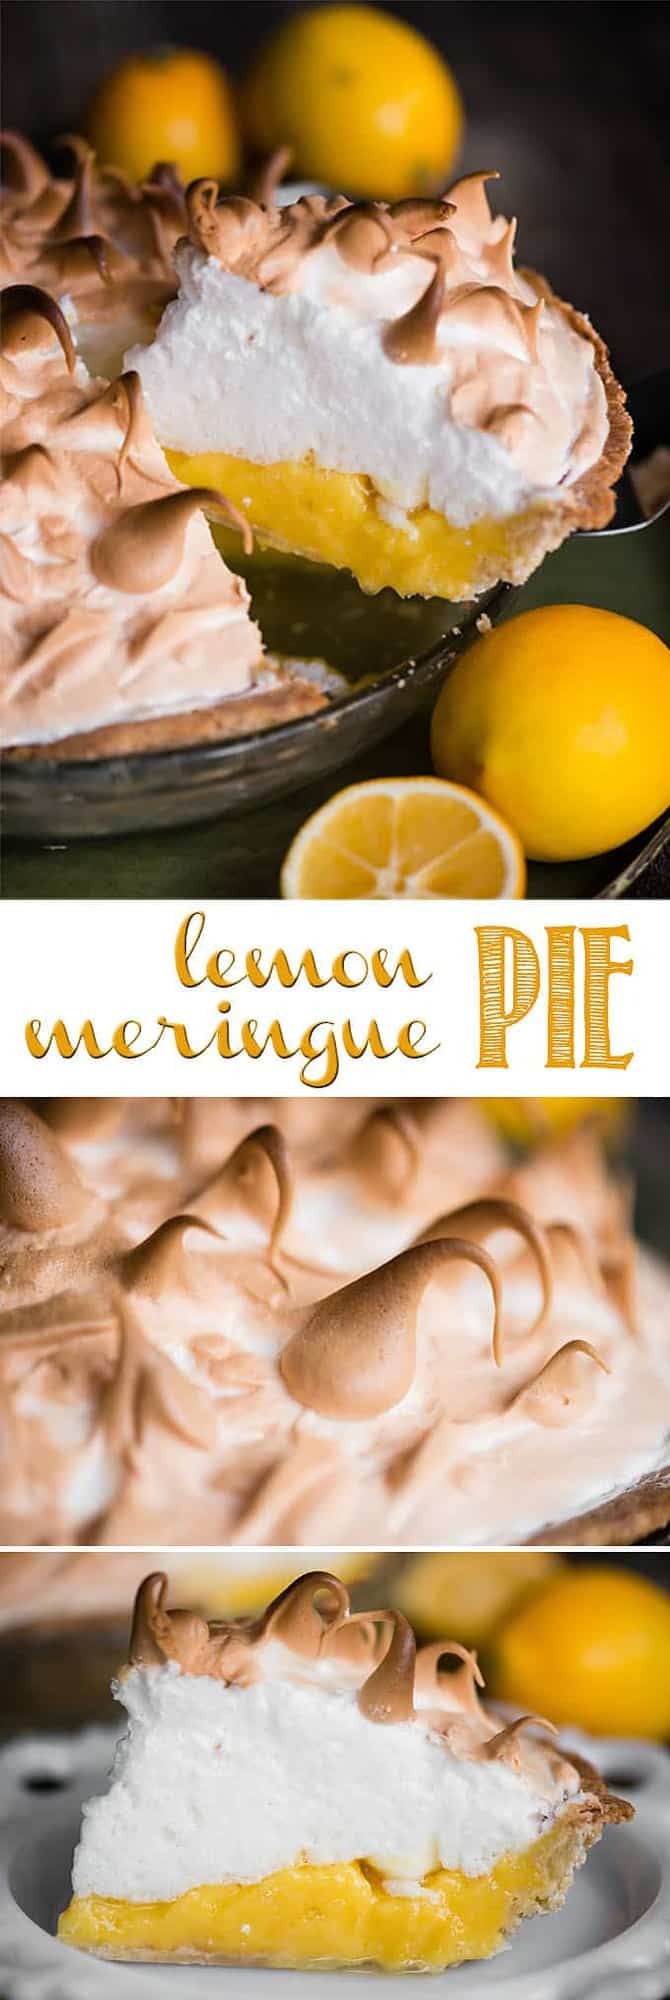 Lemon Meringue Pie is made with a flaky all-butter crust, a creamy and tart lemon filling, and a light meringue topping. It is a fantastic citrus dessert that is a real treat because it is a three-step recipe that takes time, care, and technique. The result is a mouth watering pie that looks and tastes amazing! #lemonmeringuepie #lemon